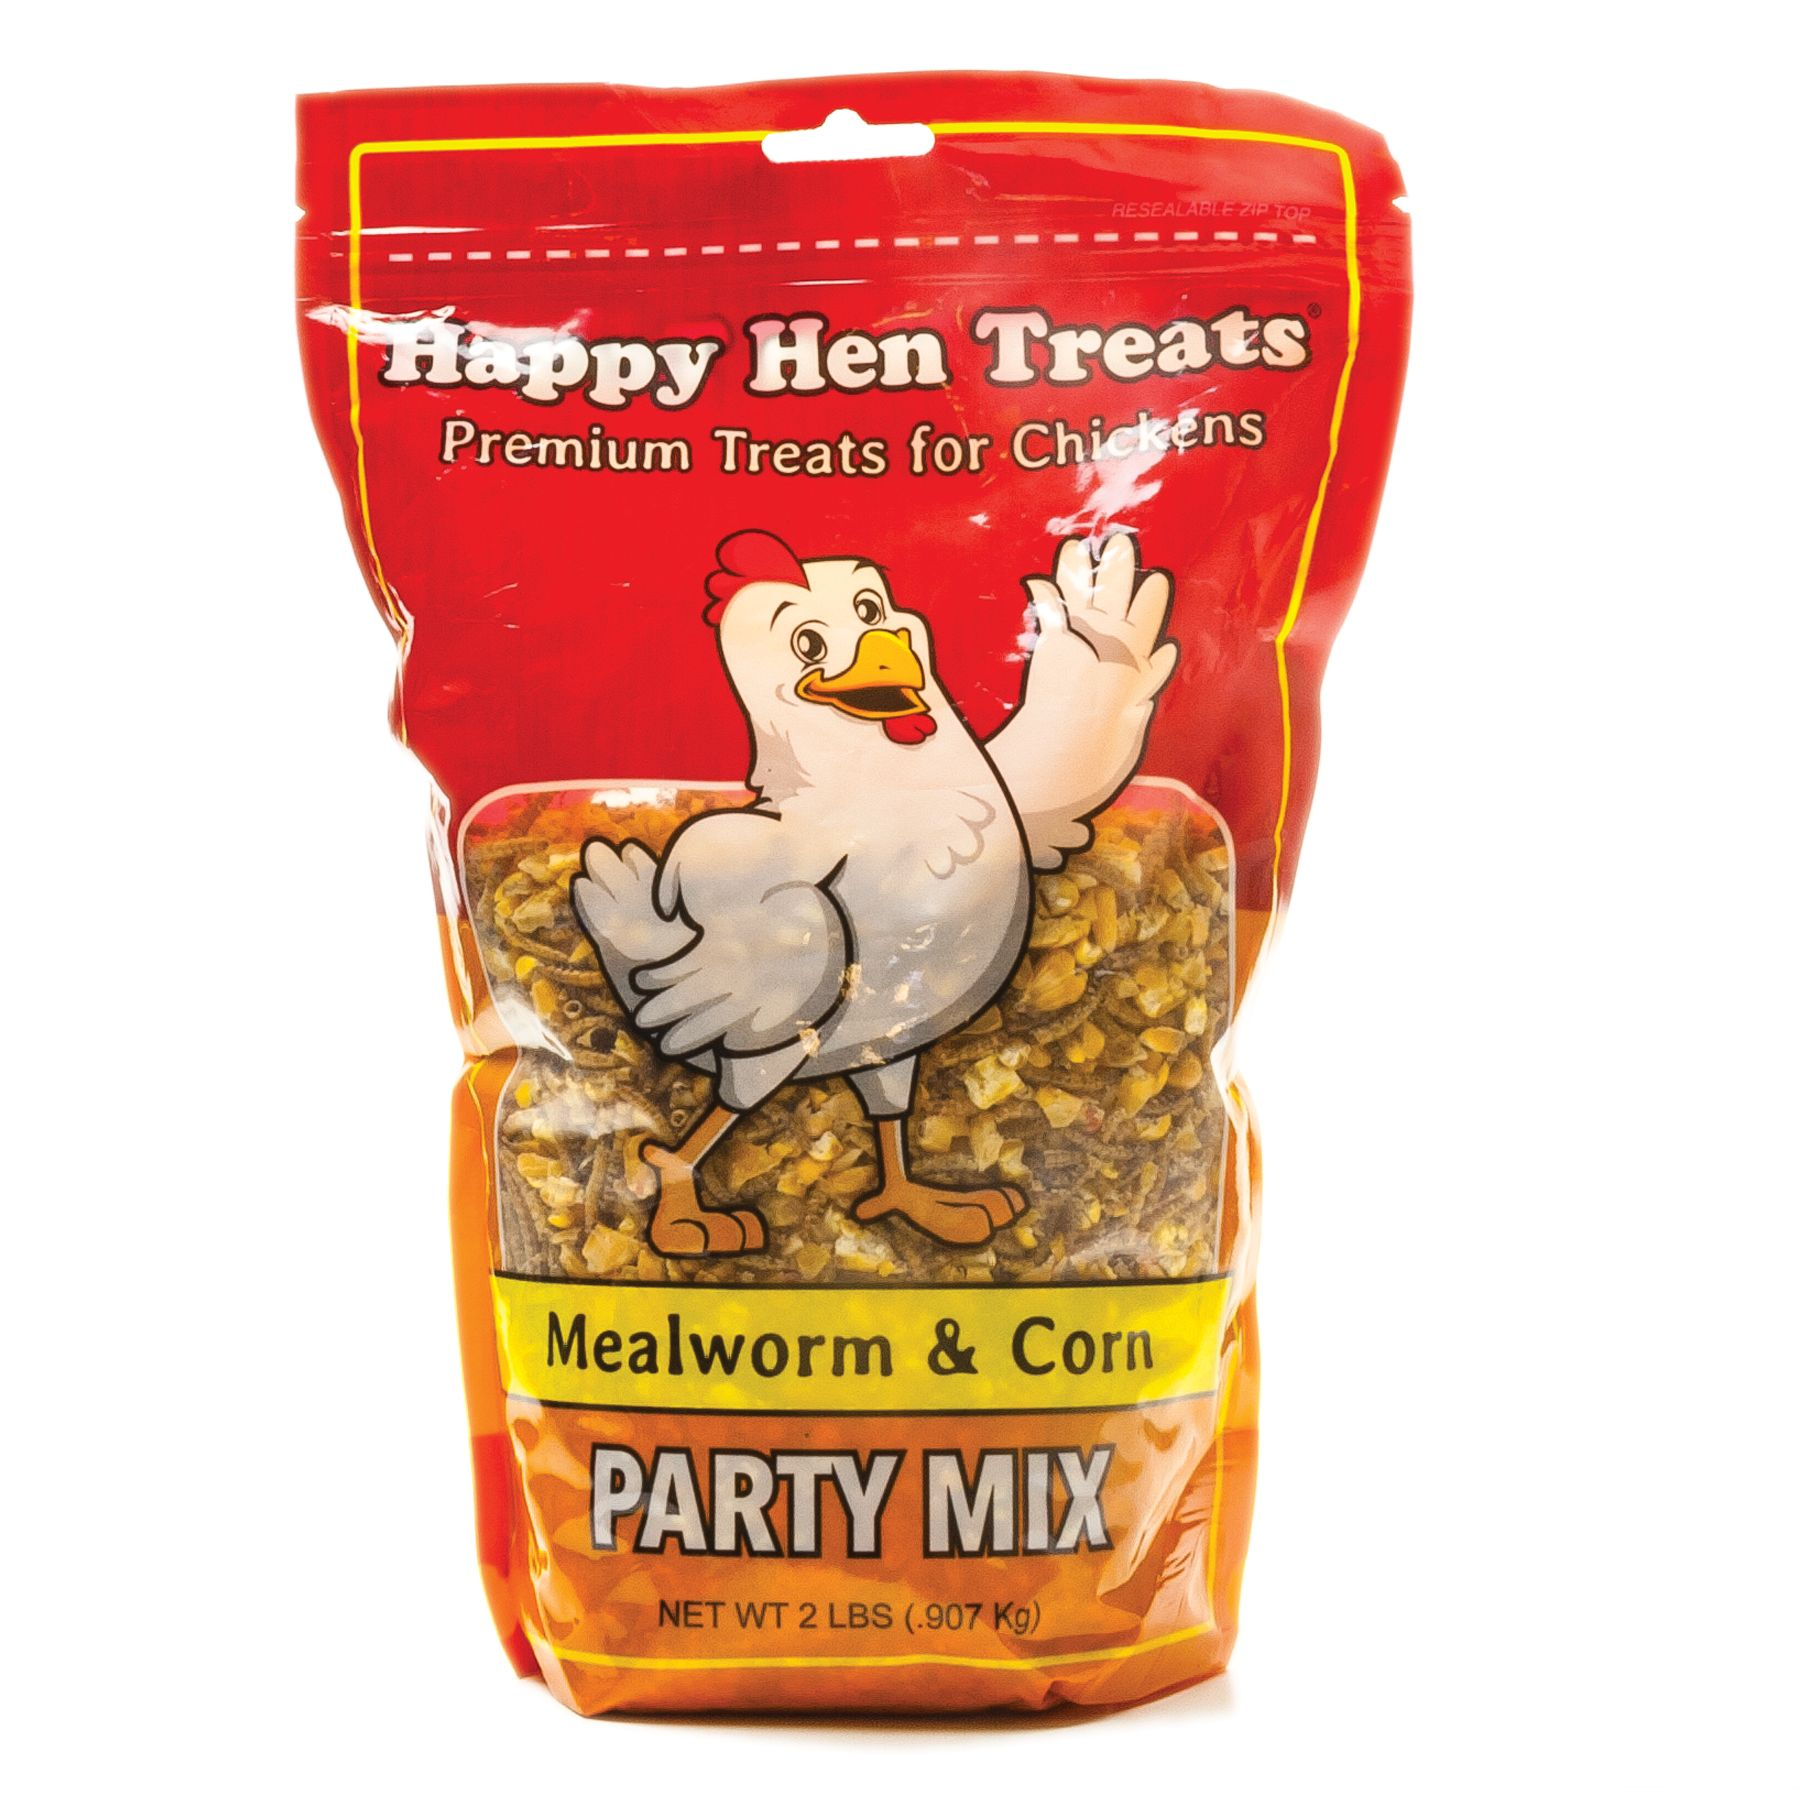 Happy Hen Treats Mealworm And Corn Party Mix Chicken Treats Size 2 Lb